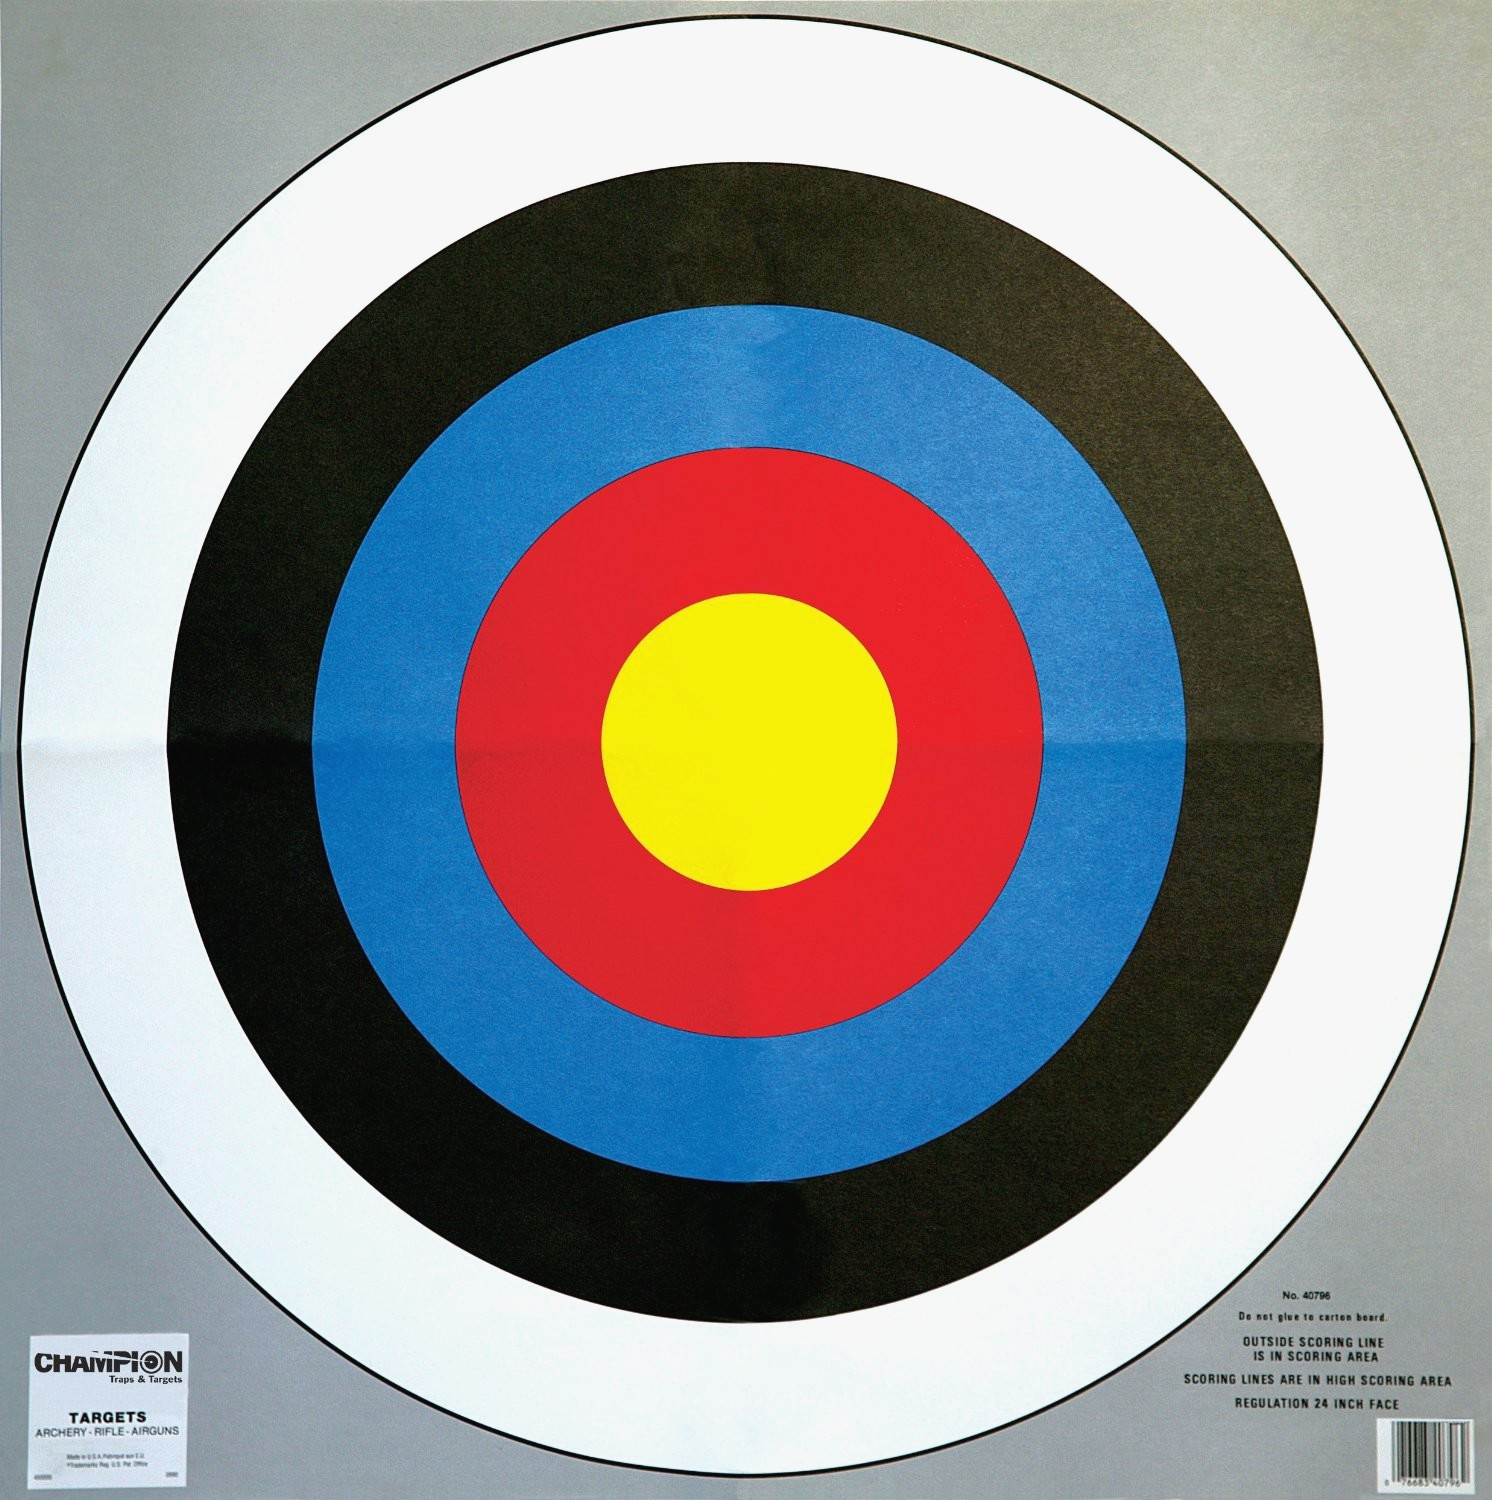 Bullseye clipart archery. Target for kids awesome